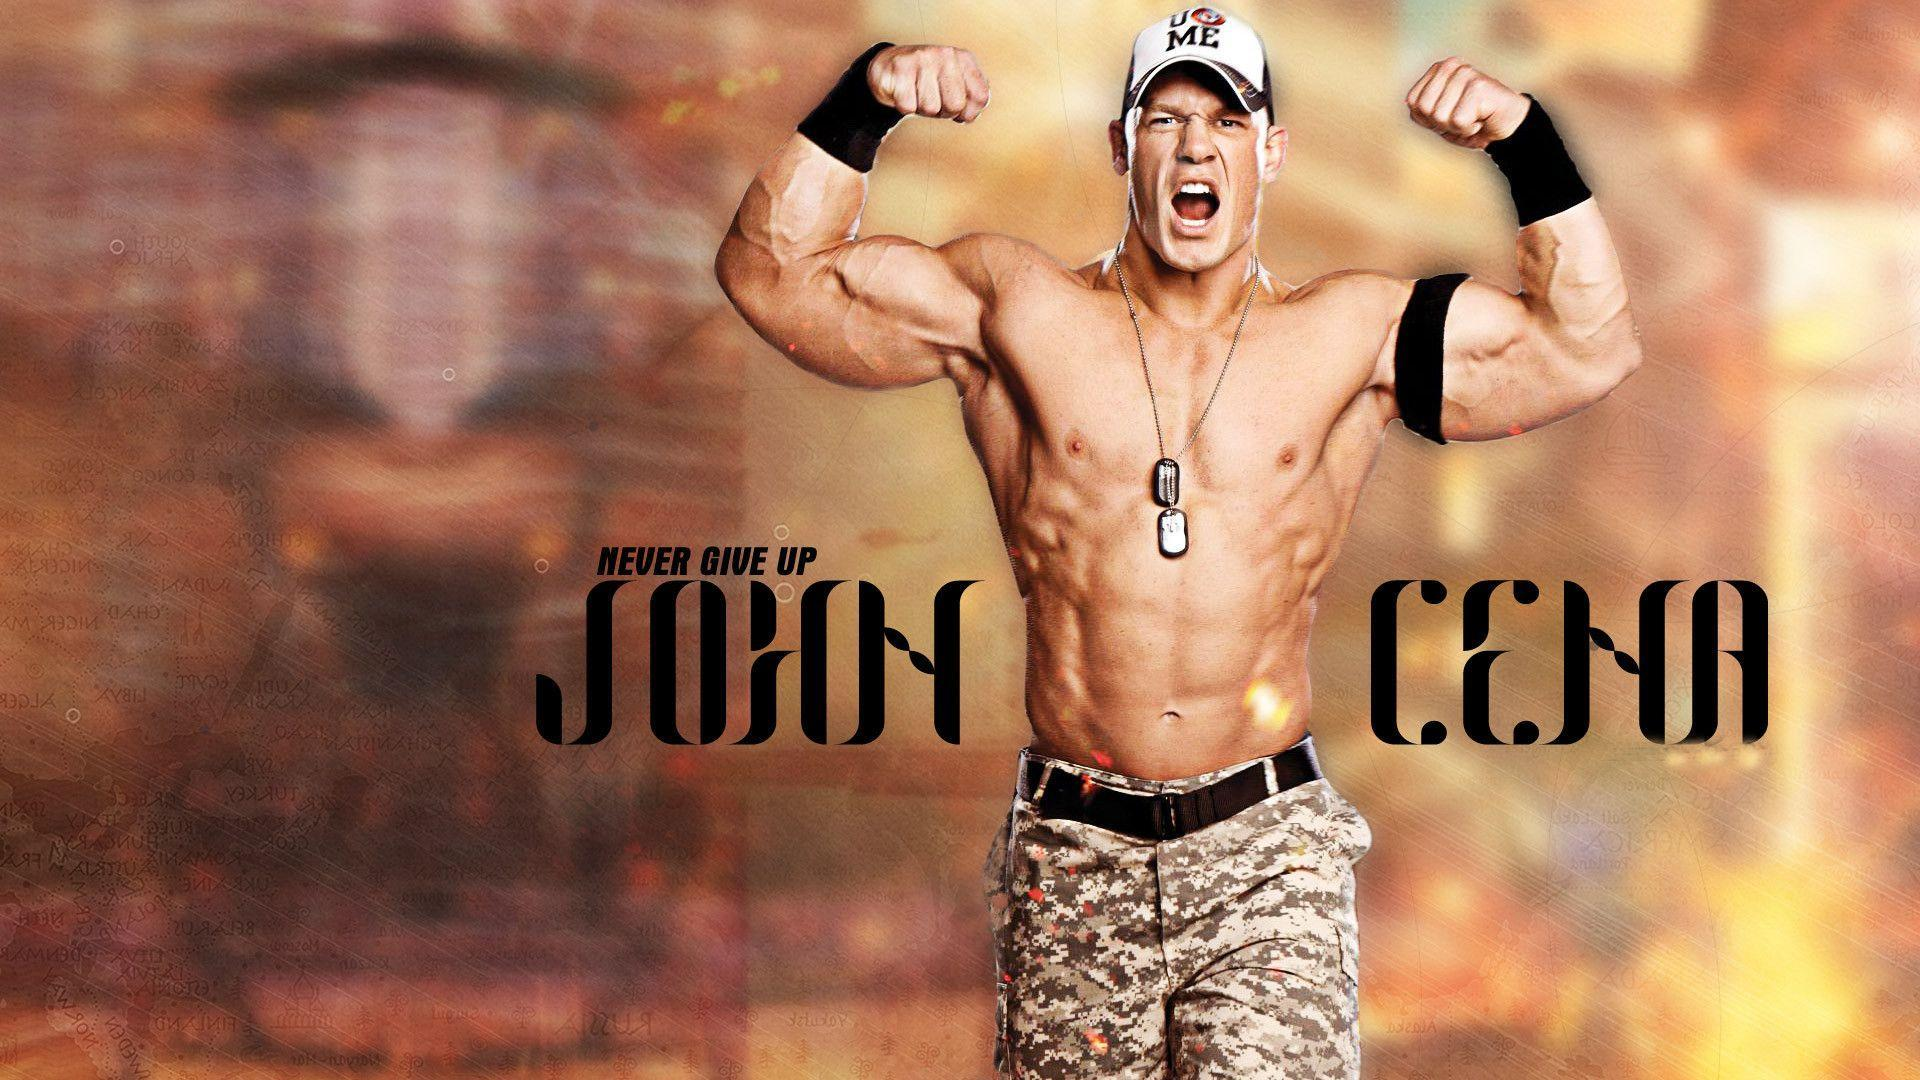 wwe wallpaper 1280x1024 jhone chena - photo #5